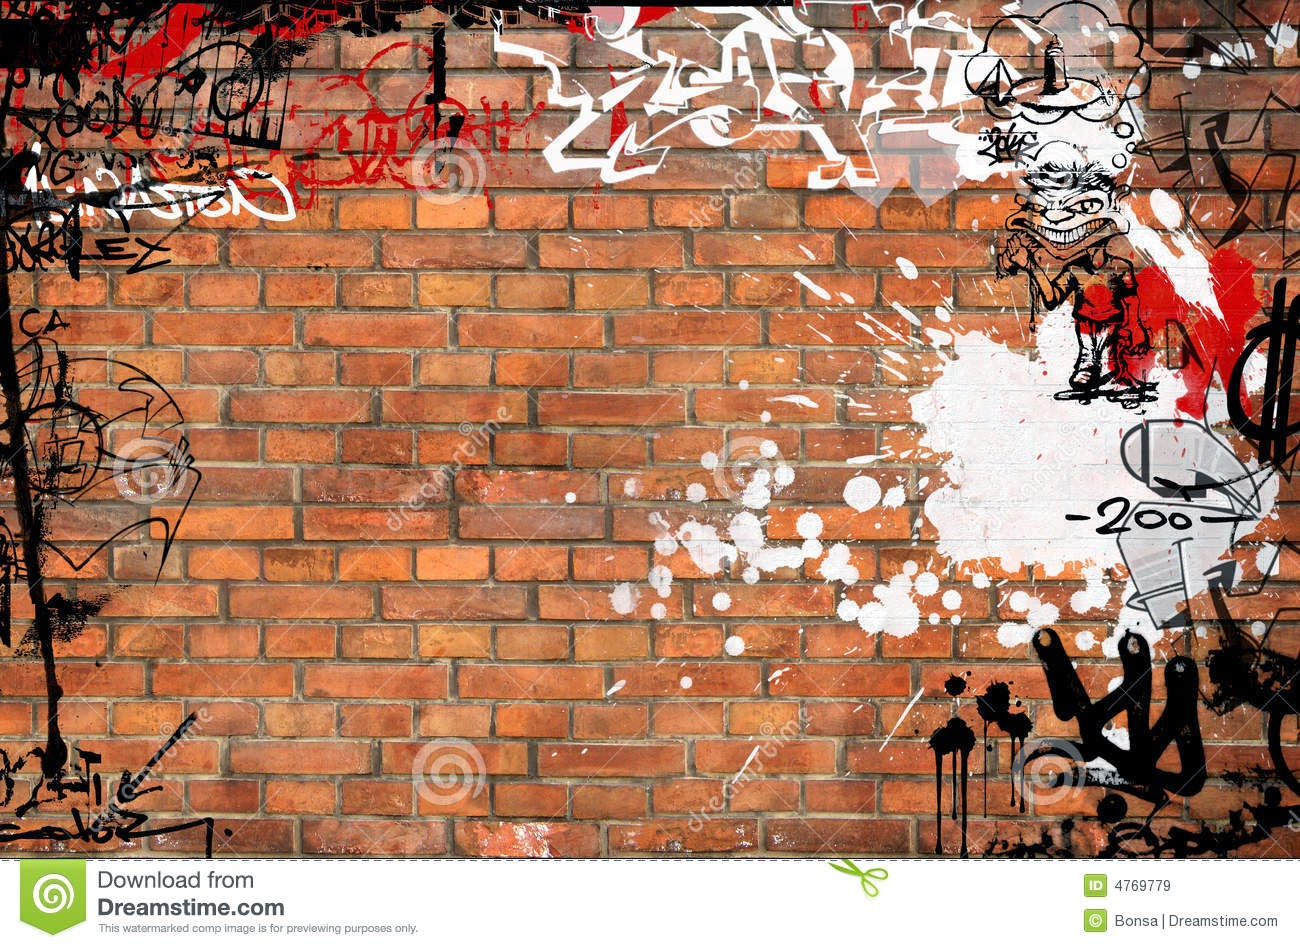 Graffiti wall creator - Graffiti Brick Wall Drawing